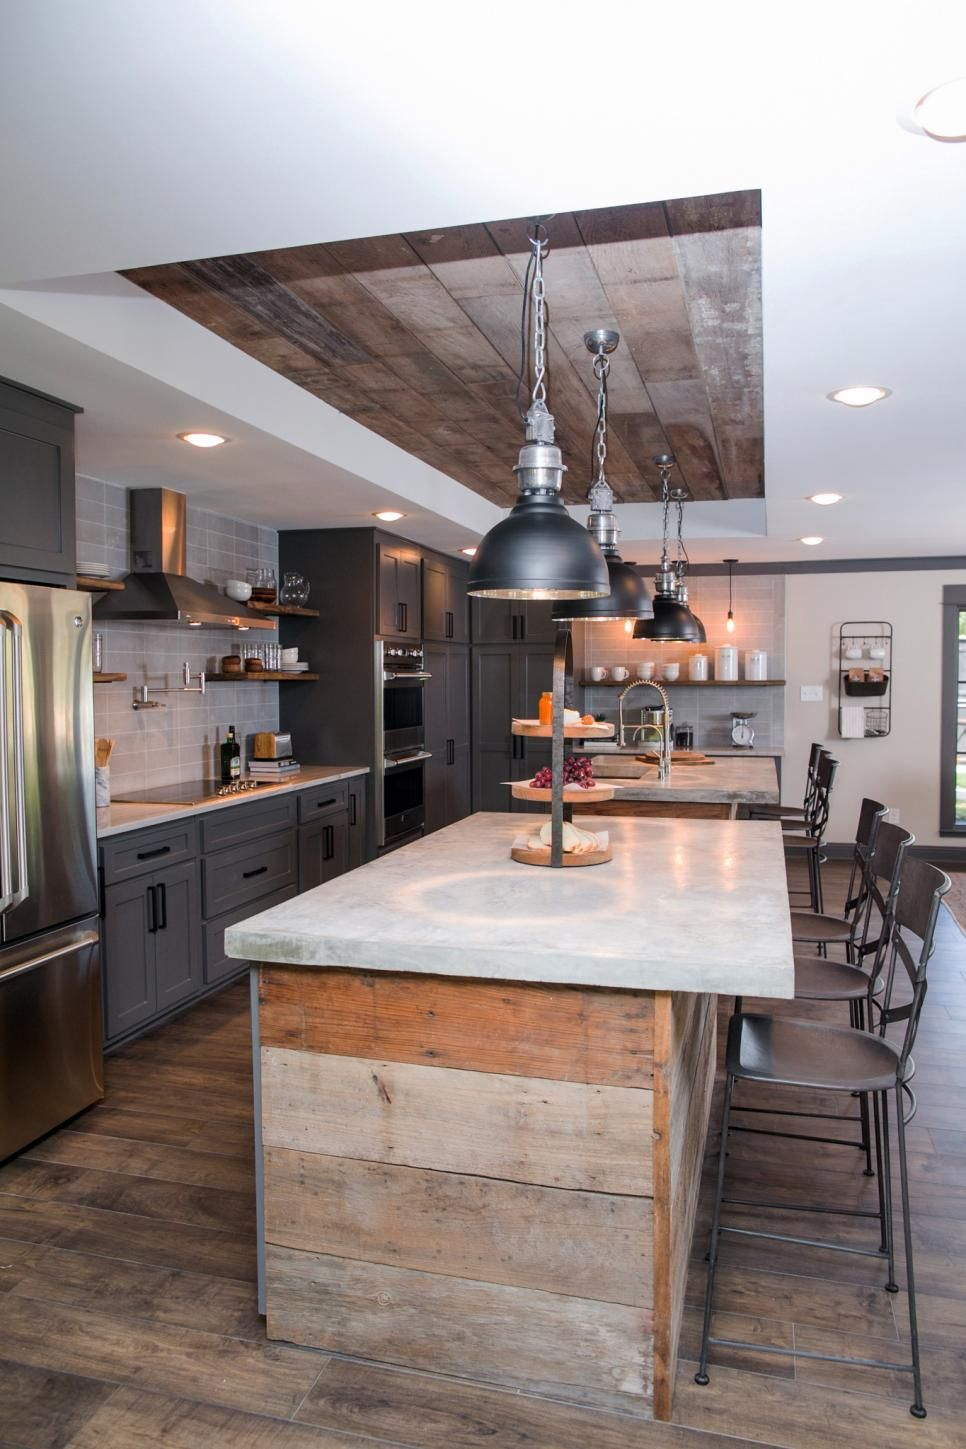 A Fixer Upper for a Most Eligible Bachelor is part of Home Accents DIY Joanna Gaines - Chip and Joanna Gaines help a Waco native, moving back home from New York, find and fix up a lakefront home to create a bachelor pad with a masculine feel as well as a touch of class